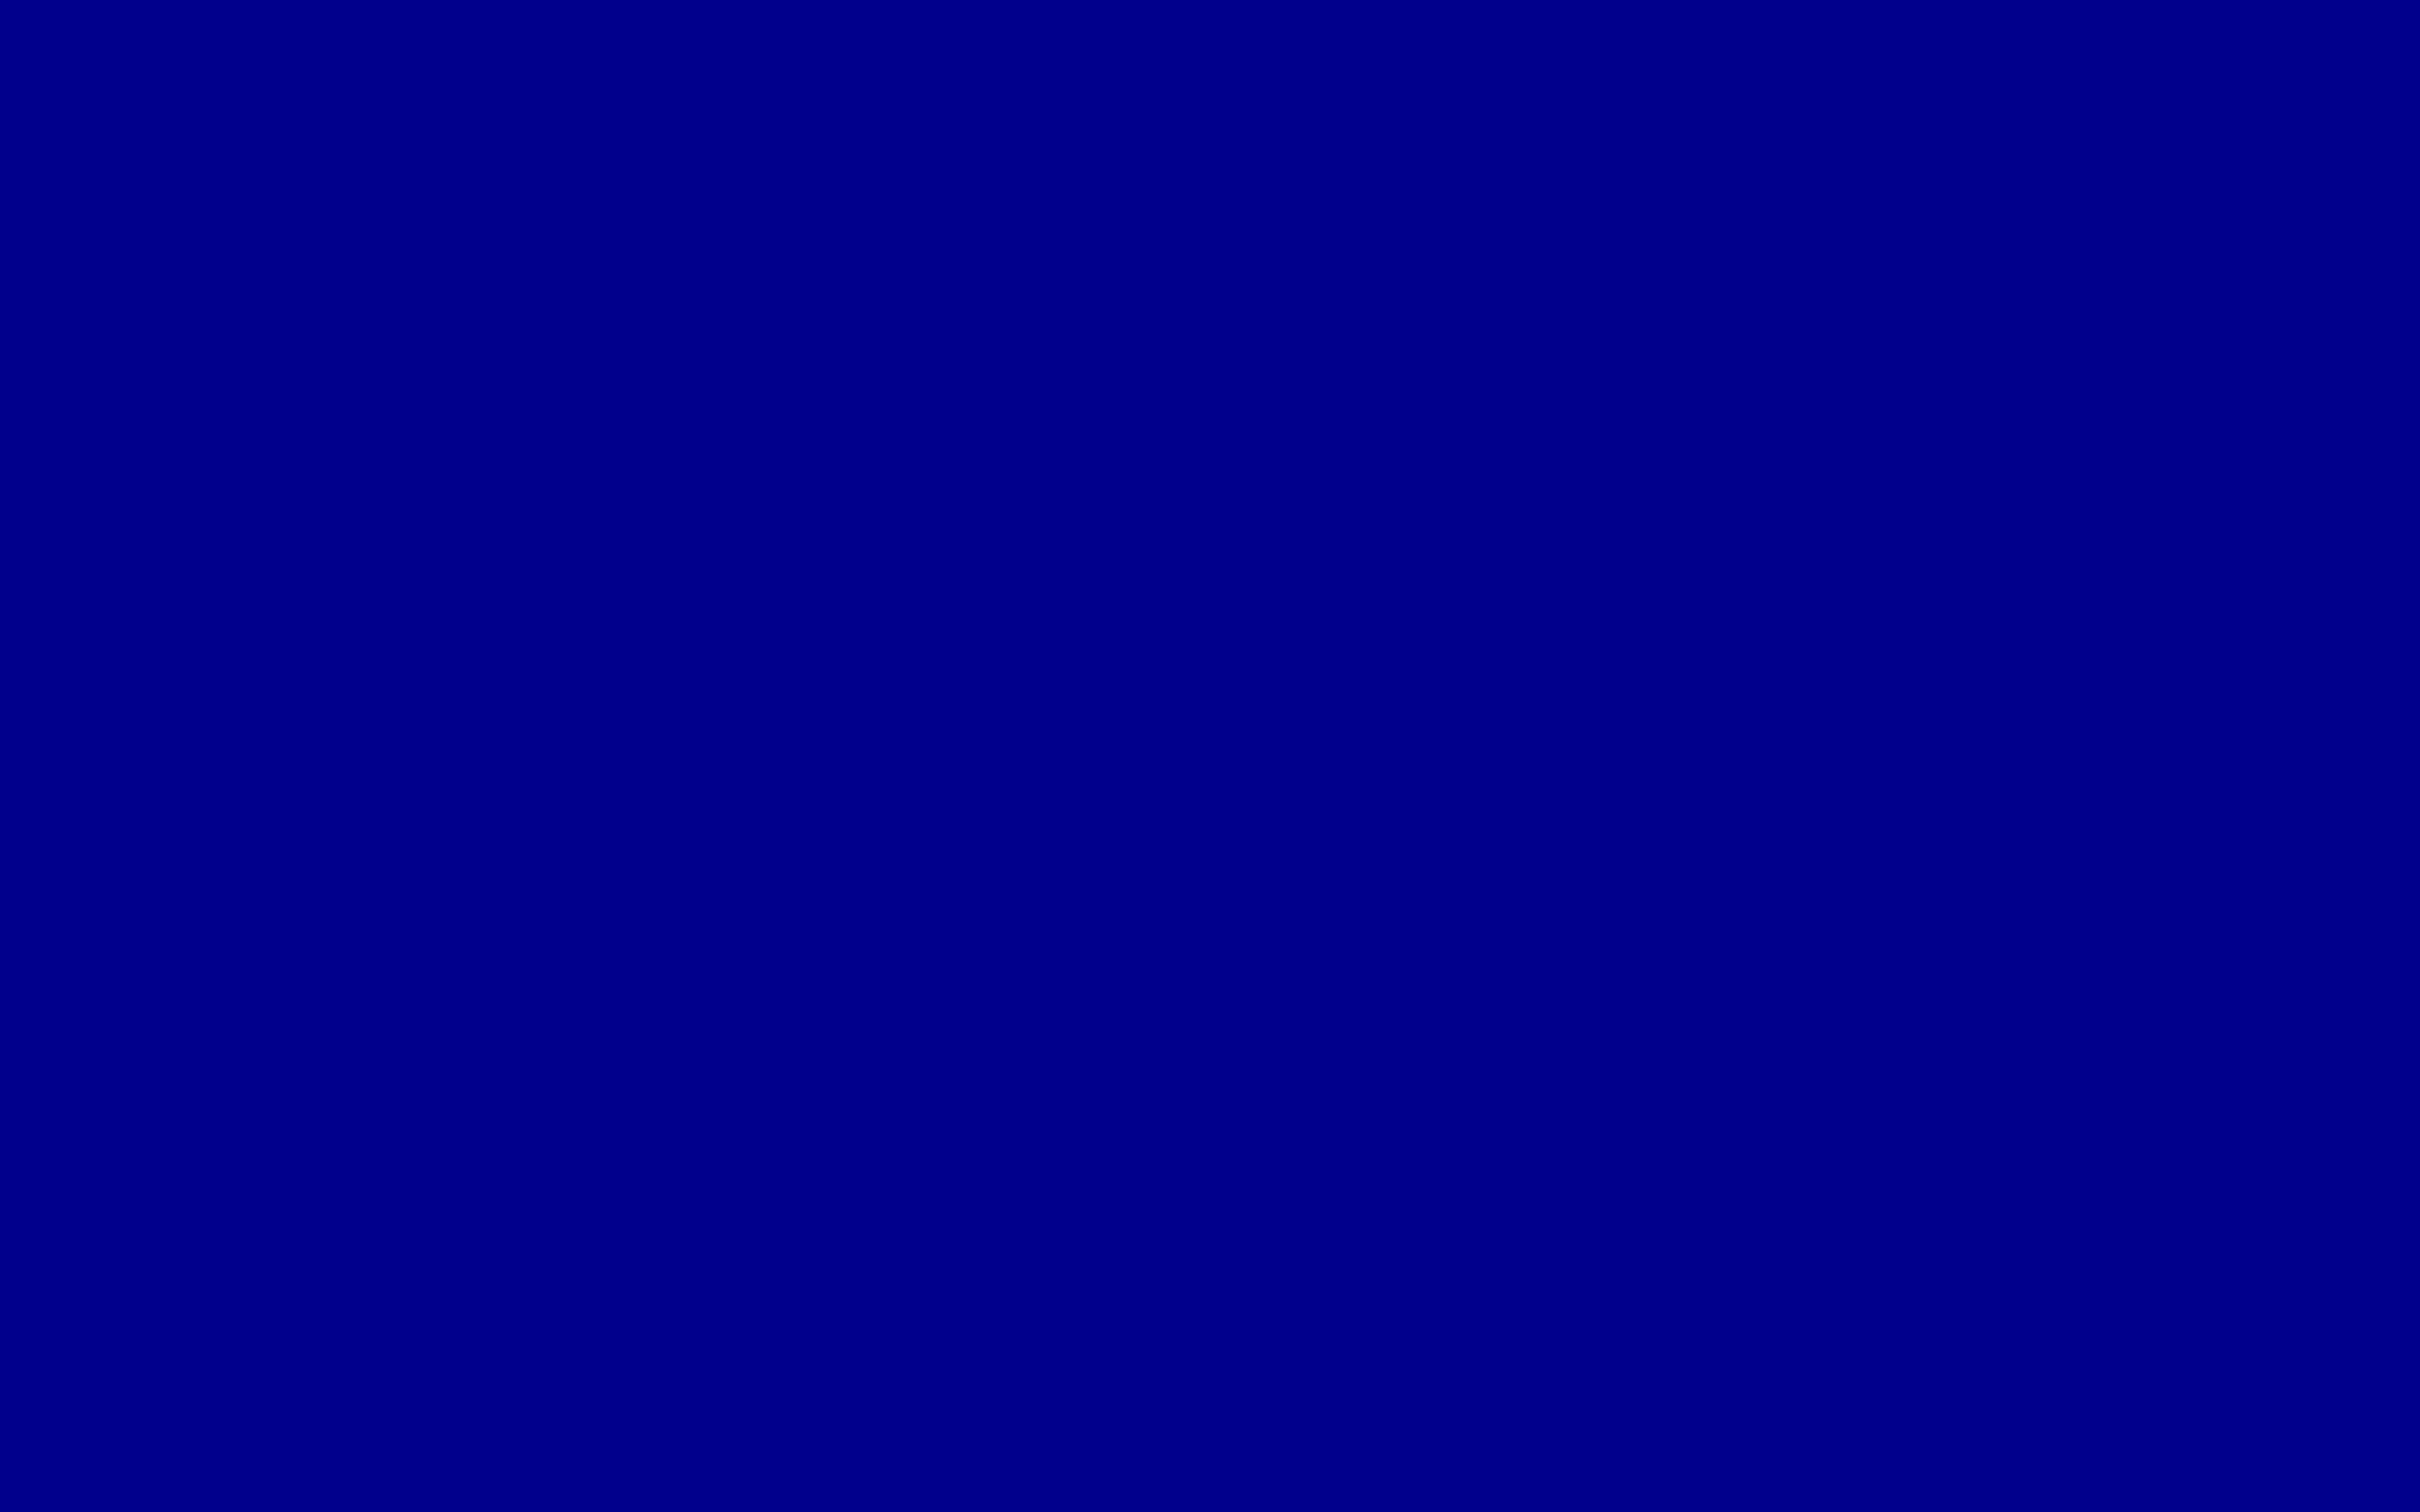 2880x1800 Dark Blue Solid Color Background